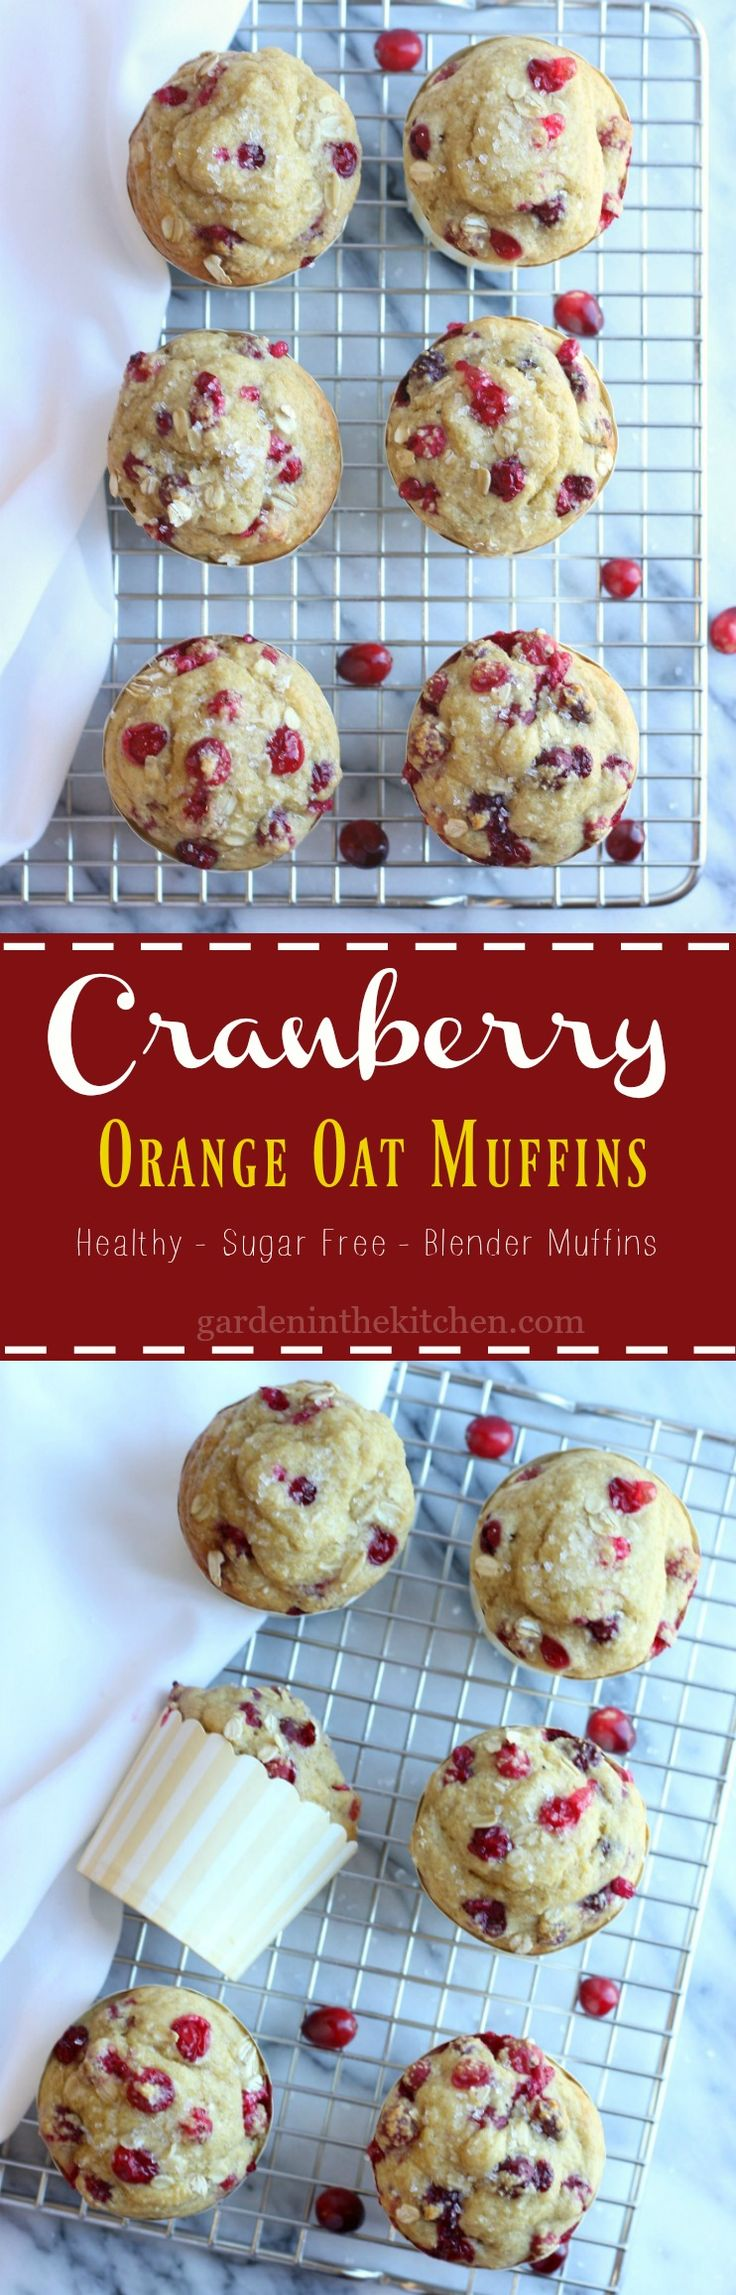 Cranberry Orange Oat Muffins | gardeninthekitchen.com